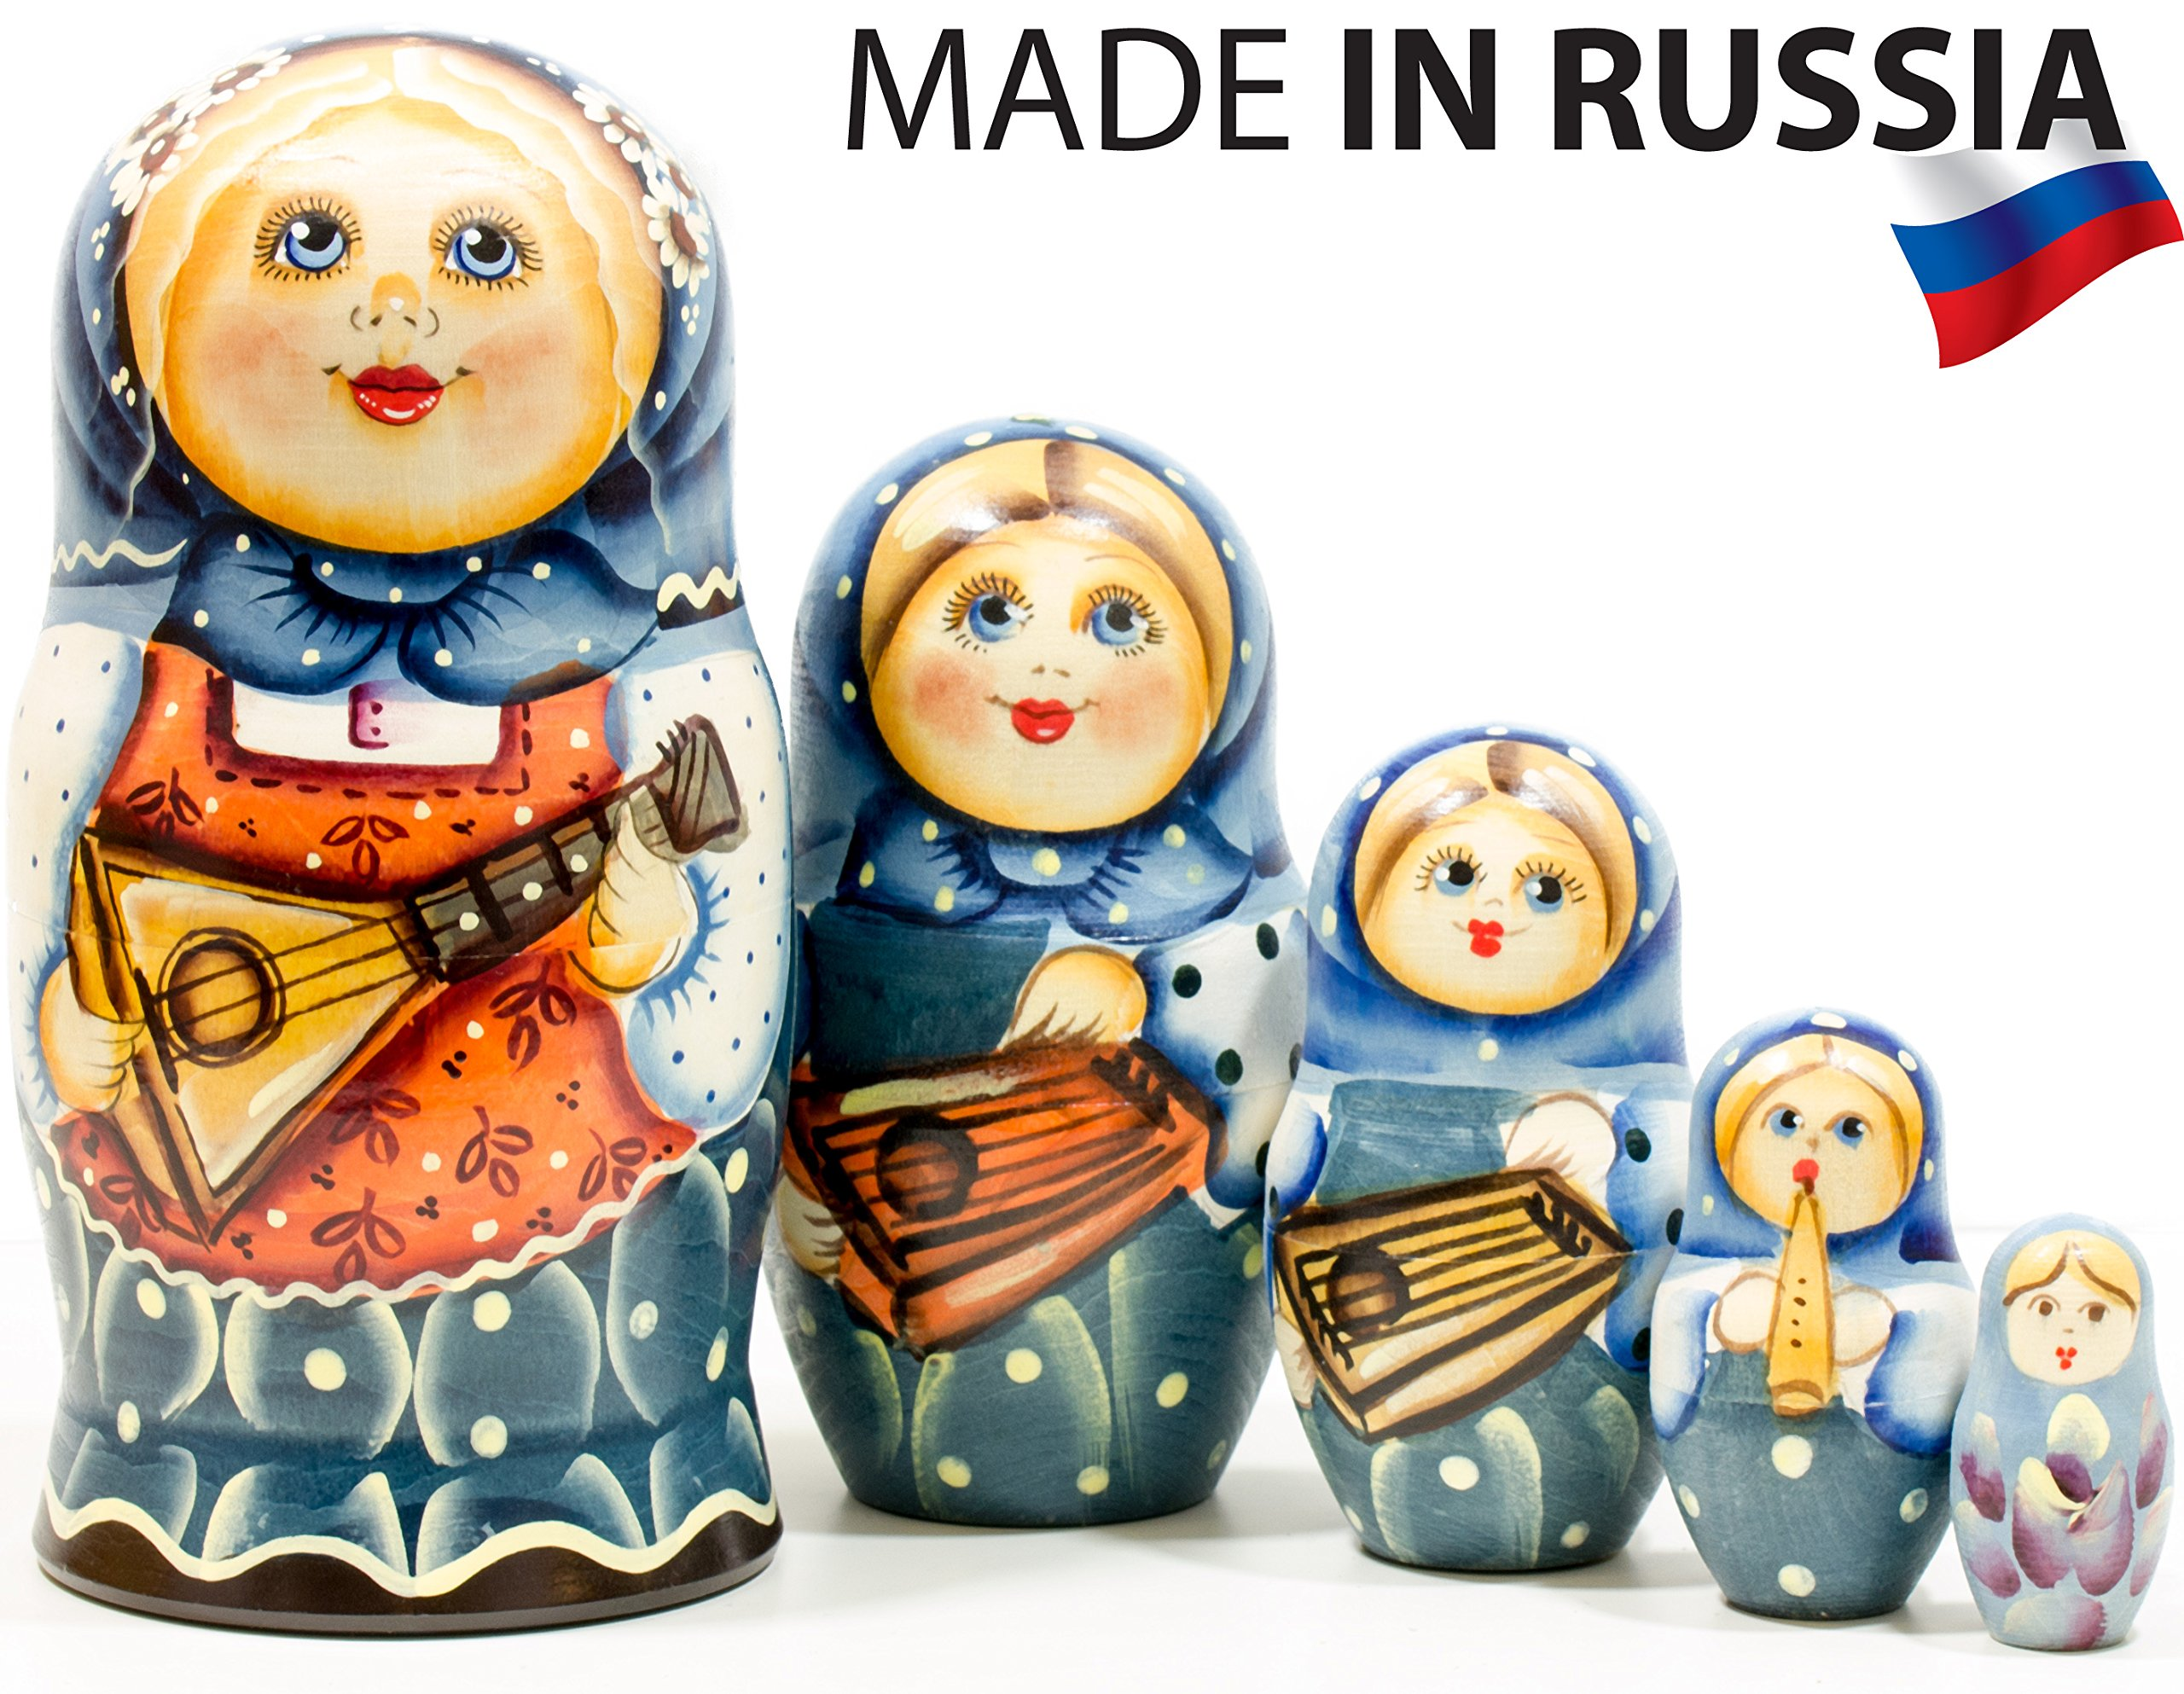 Russian Nesting Doll - ''Masha'' - Hand Painted in Russia - 6 style variations - Traditional Matryoshka Babushka C (6.75``(5 dolls in 1), Style D)